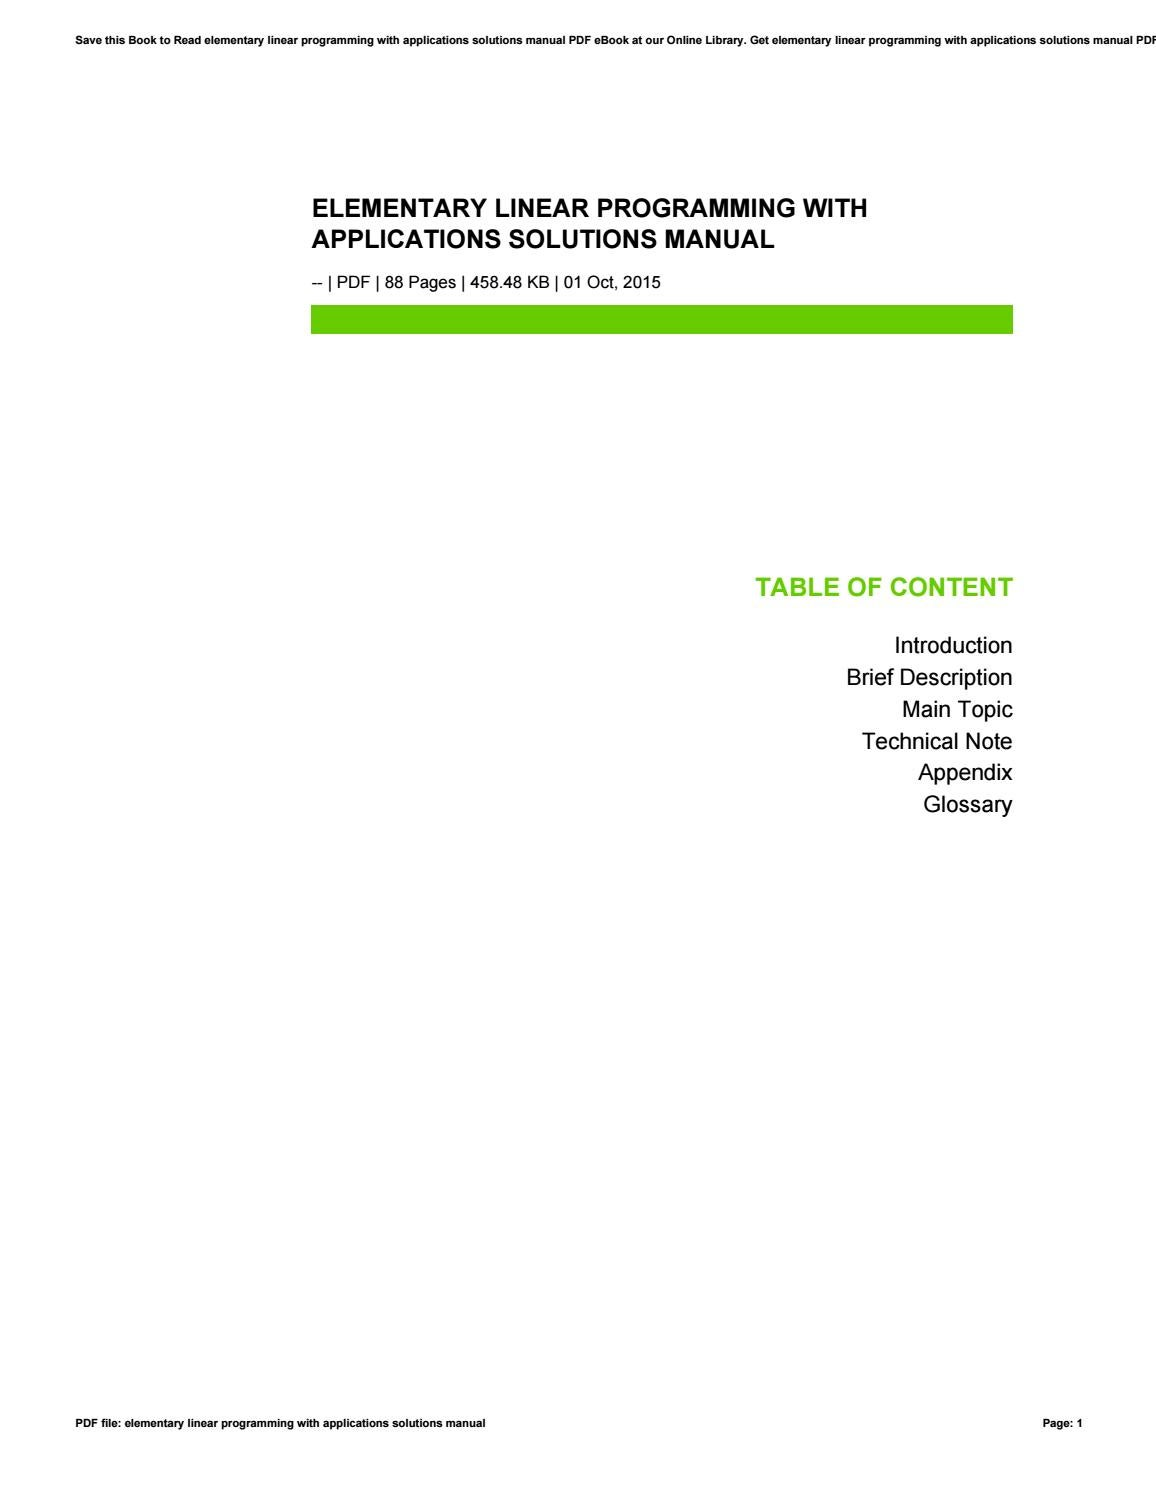 Elementary linear programming with applications solutions manual by  preseven05 - issuu